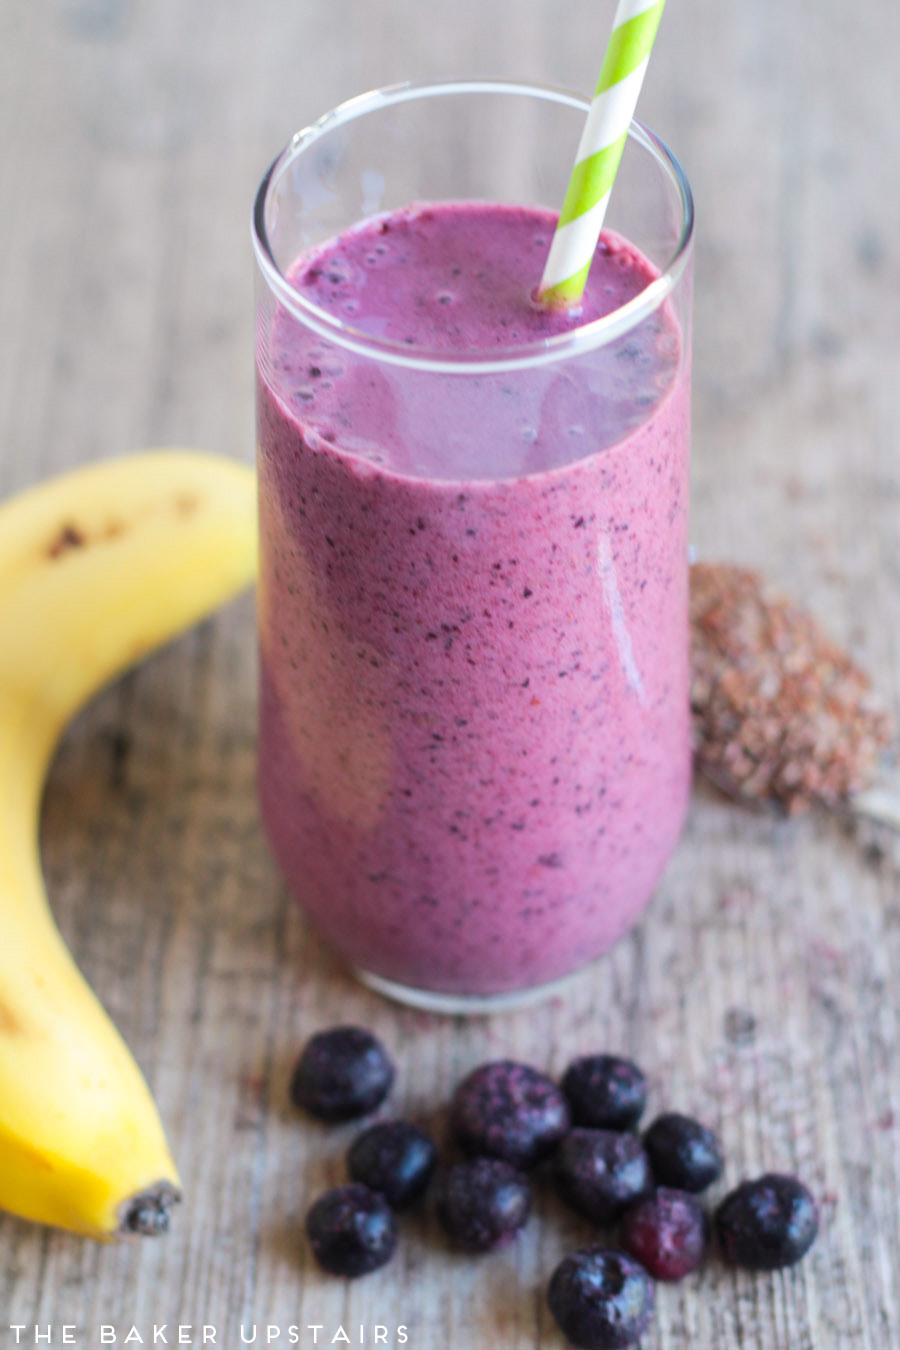 Blueberry pomegranate smoothie - so sweet, tangy, and flavorful!